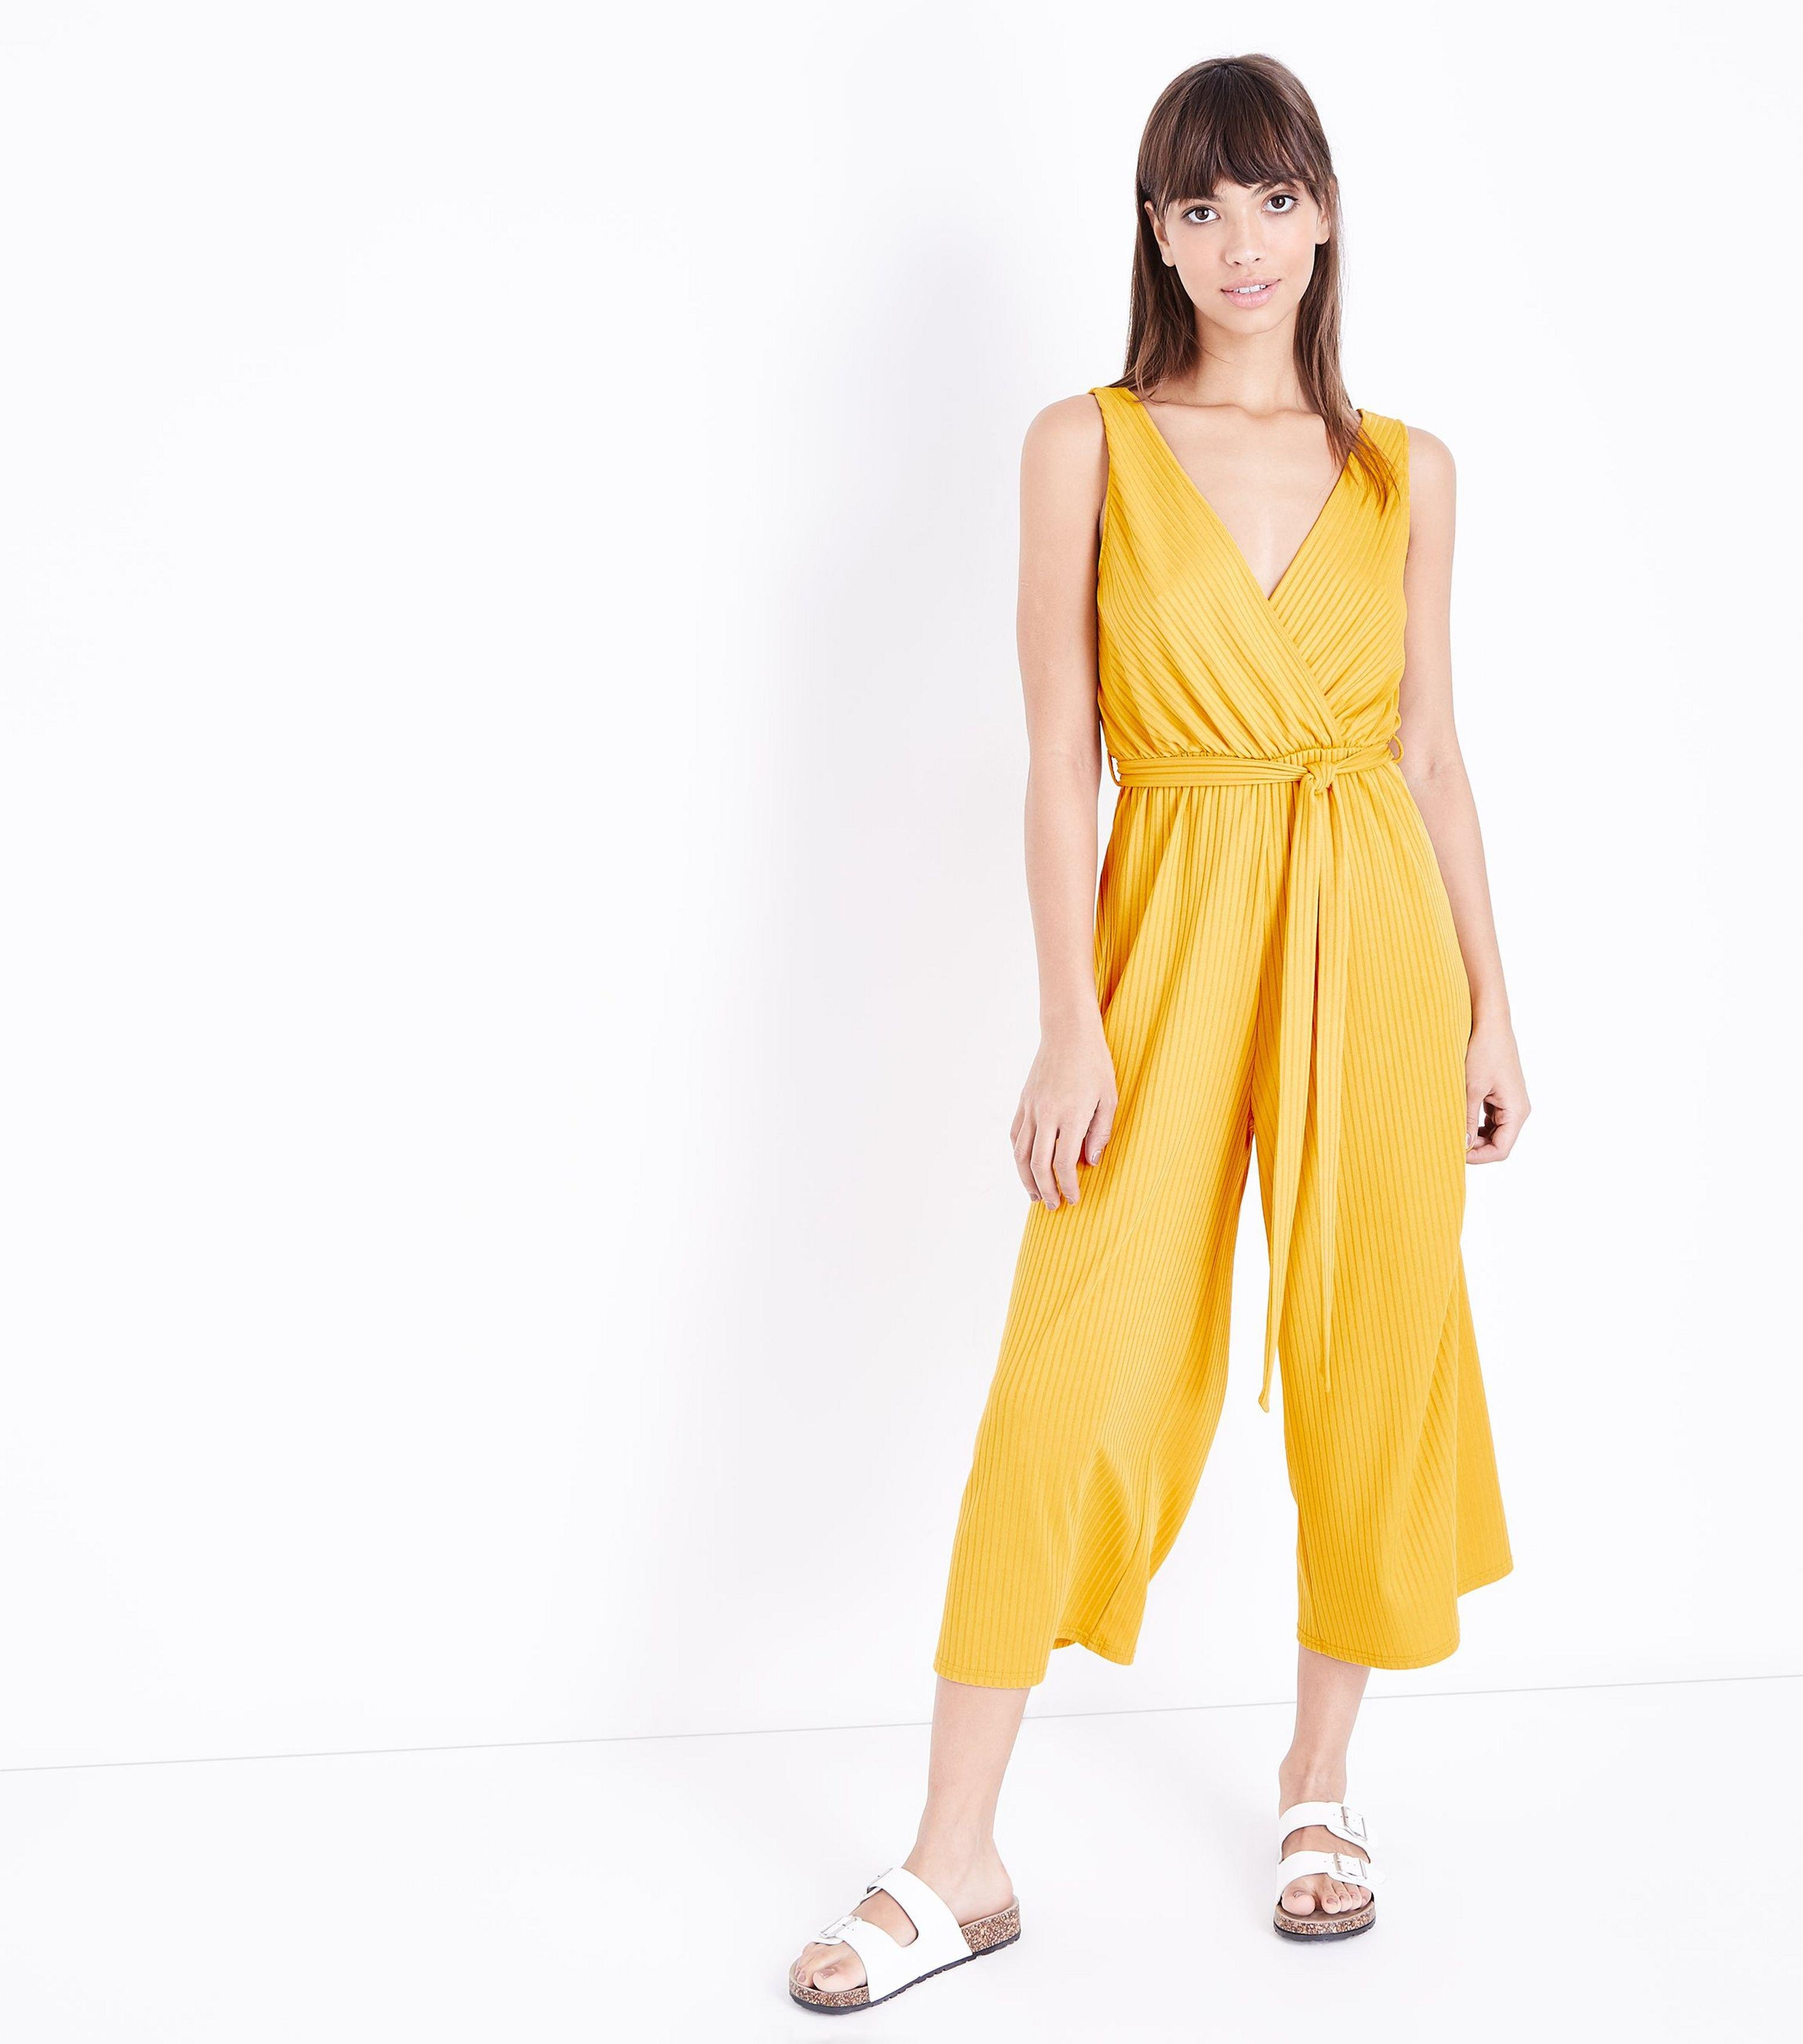 bfaa1cc3678 New Look Mustard Ribbed Sleeveless Jersey Culotte Jumpsuit in Yellow ...